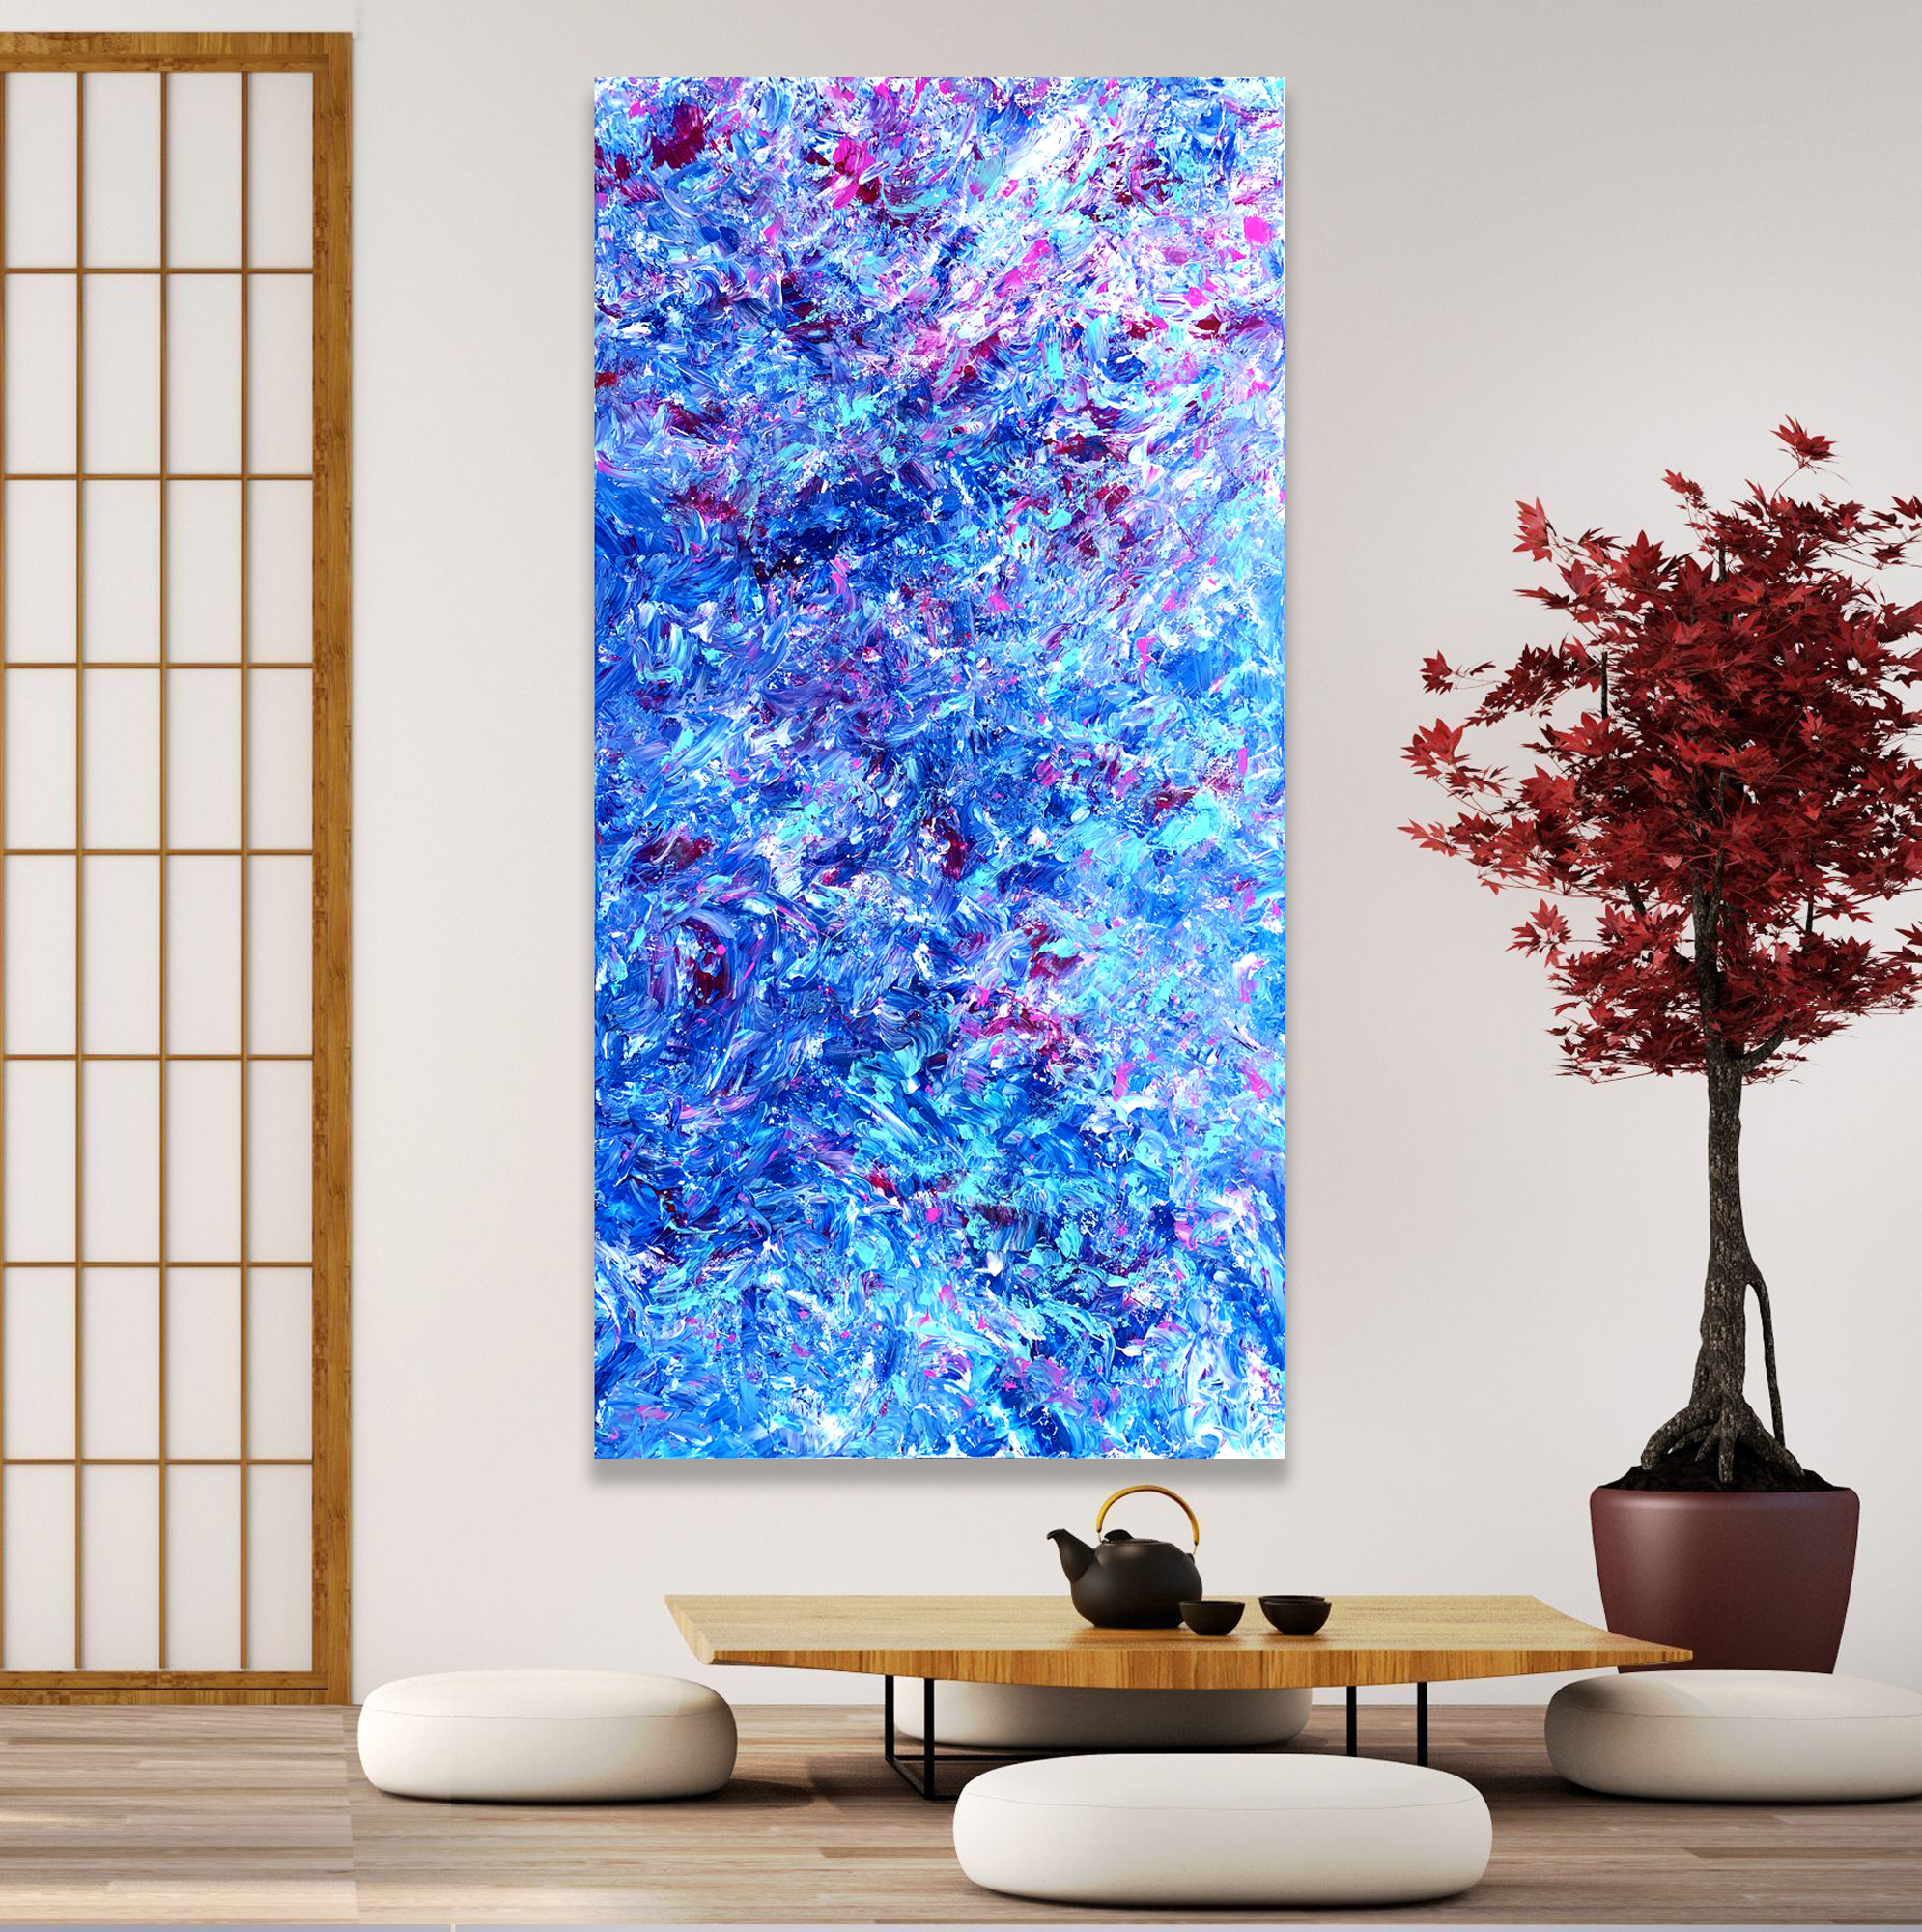 Secret Beauty - Abstract Expressionism by Estelle Asmodelle